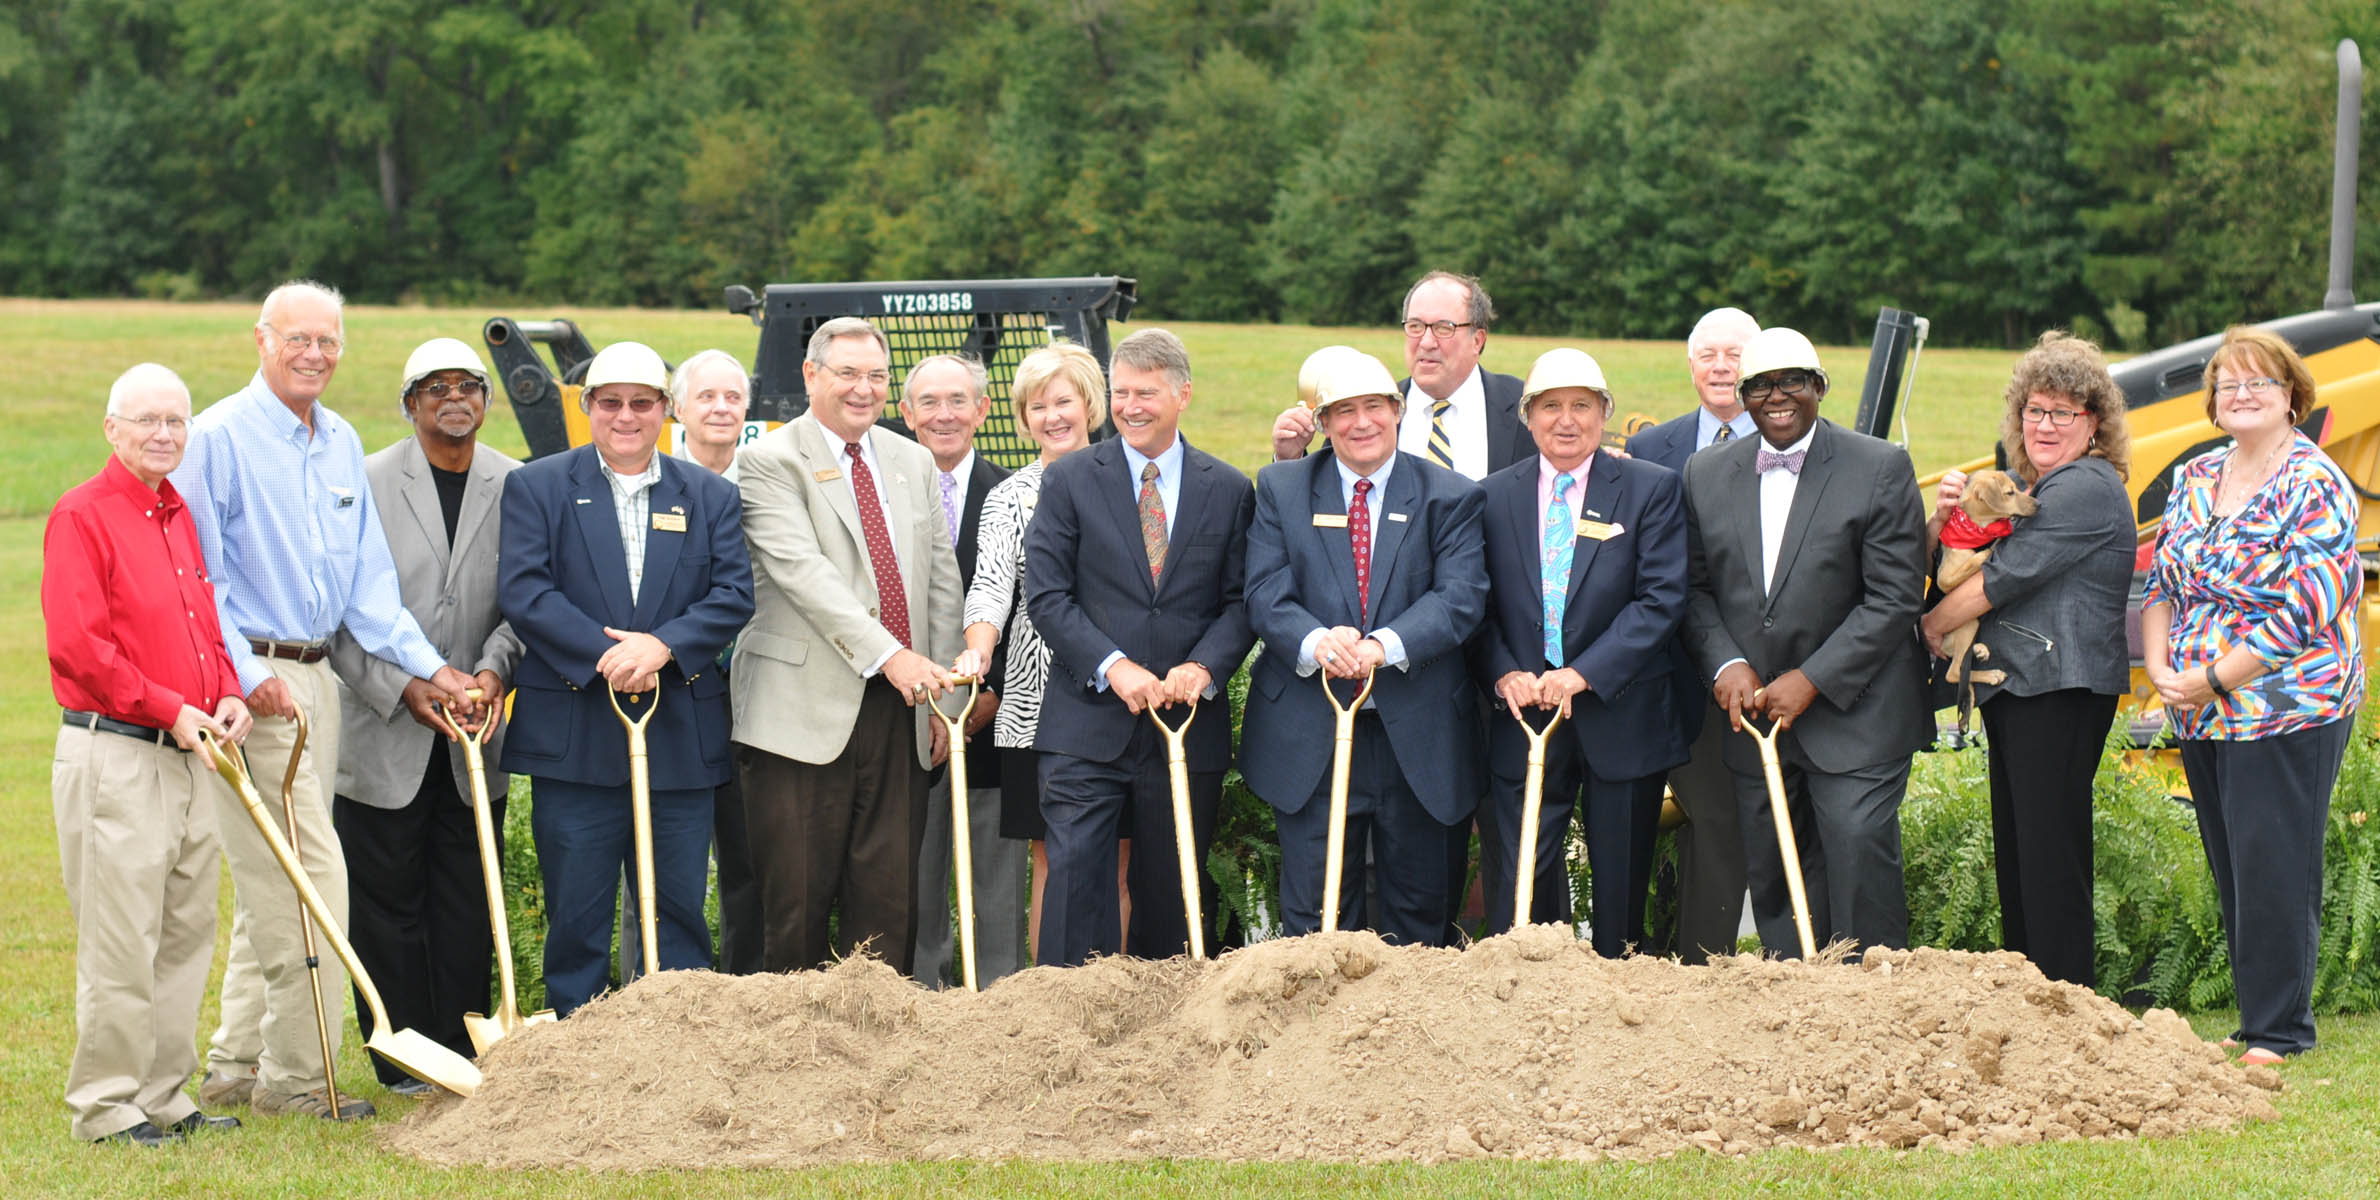 CCCC holds groundbreaking event